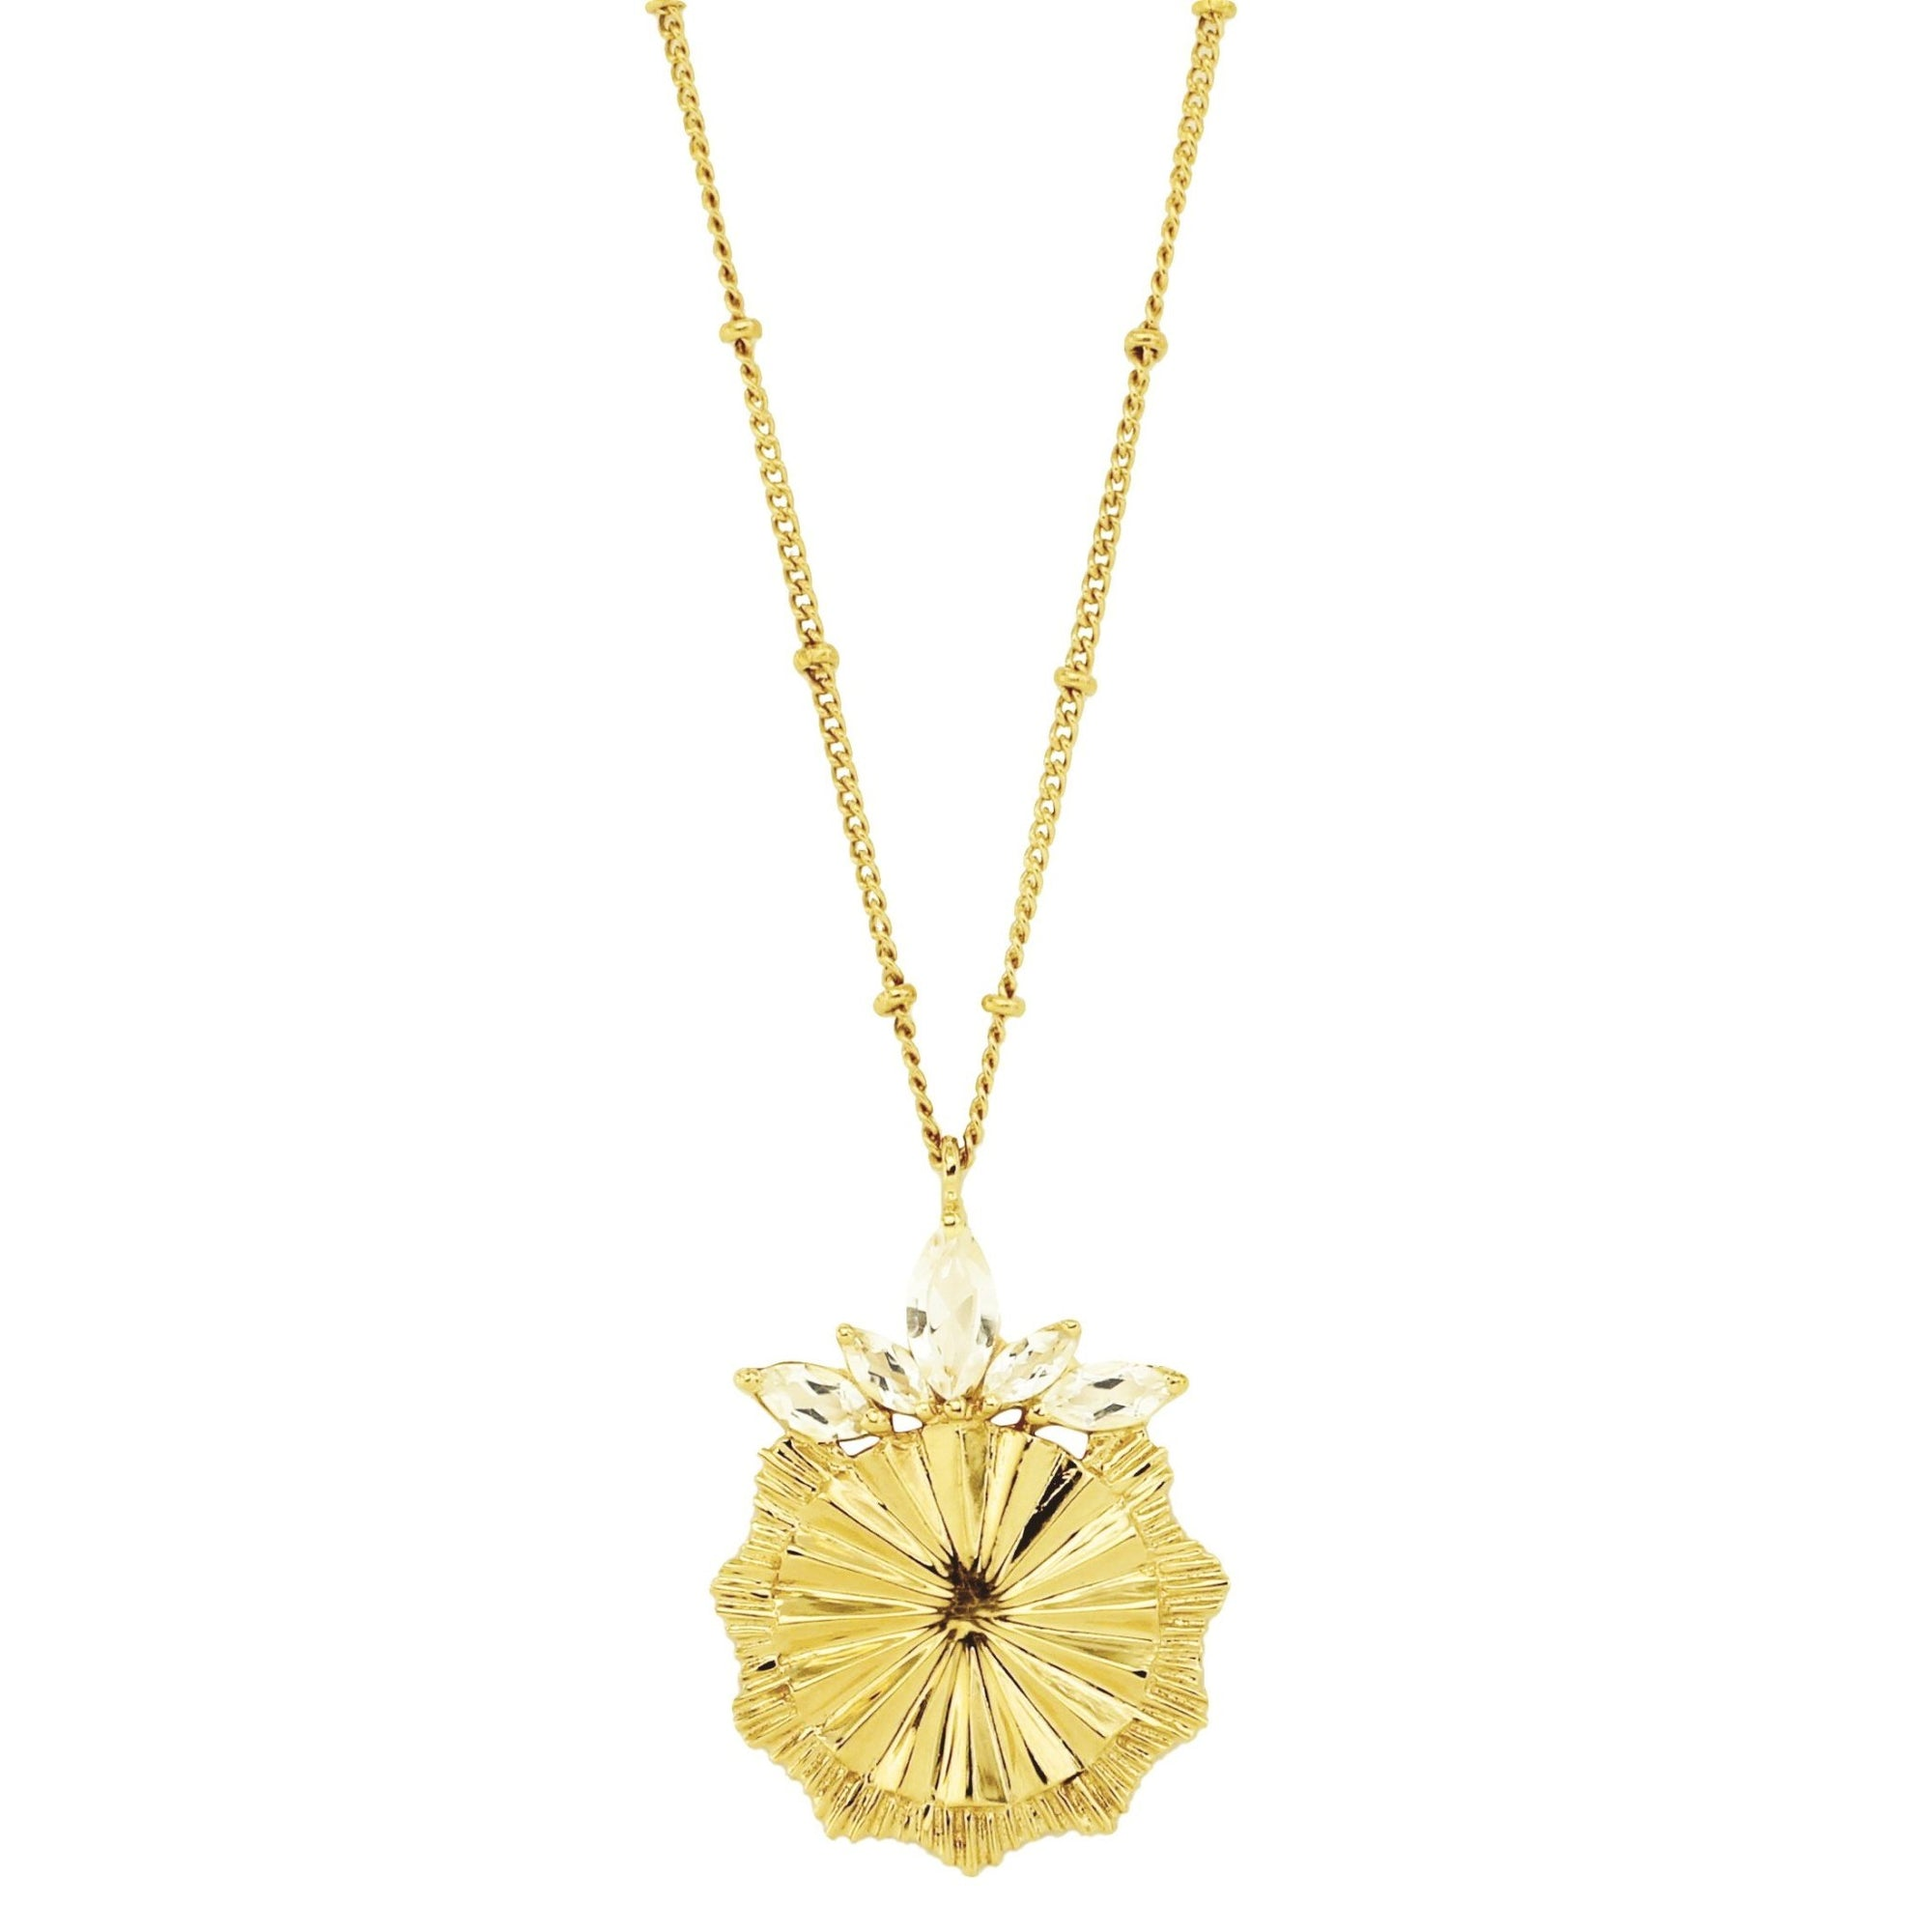 BELIEVE SOLEIL PENDANT NECKLACE - WHITE TOPAZ & GOLD - SO PRETTY CARA COTTER